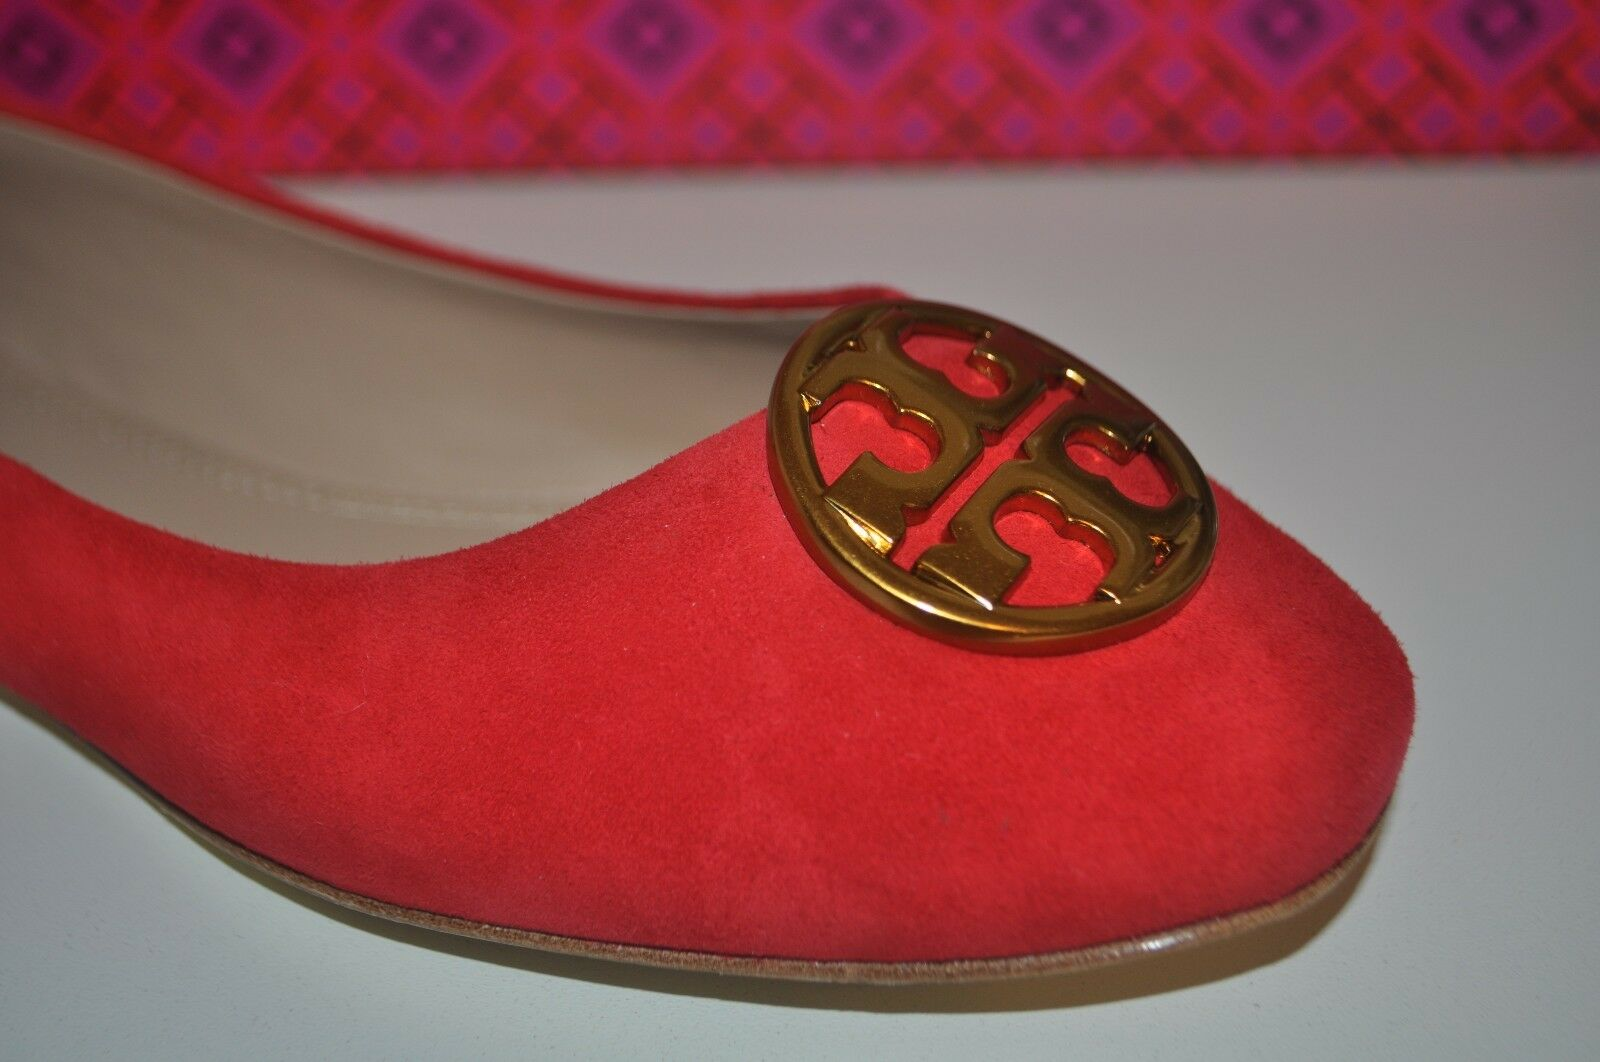 NIB Tory Burch CHELSEA Liberty RED Suede Ballet Flat shoes gold Logo Sz 8.5 M